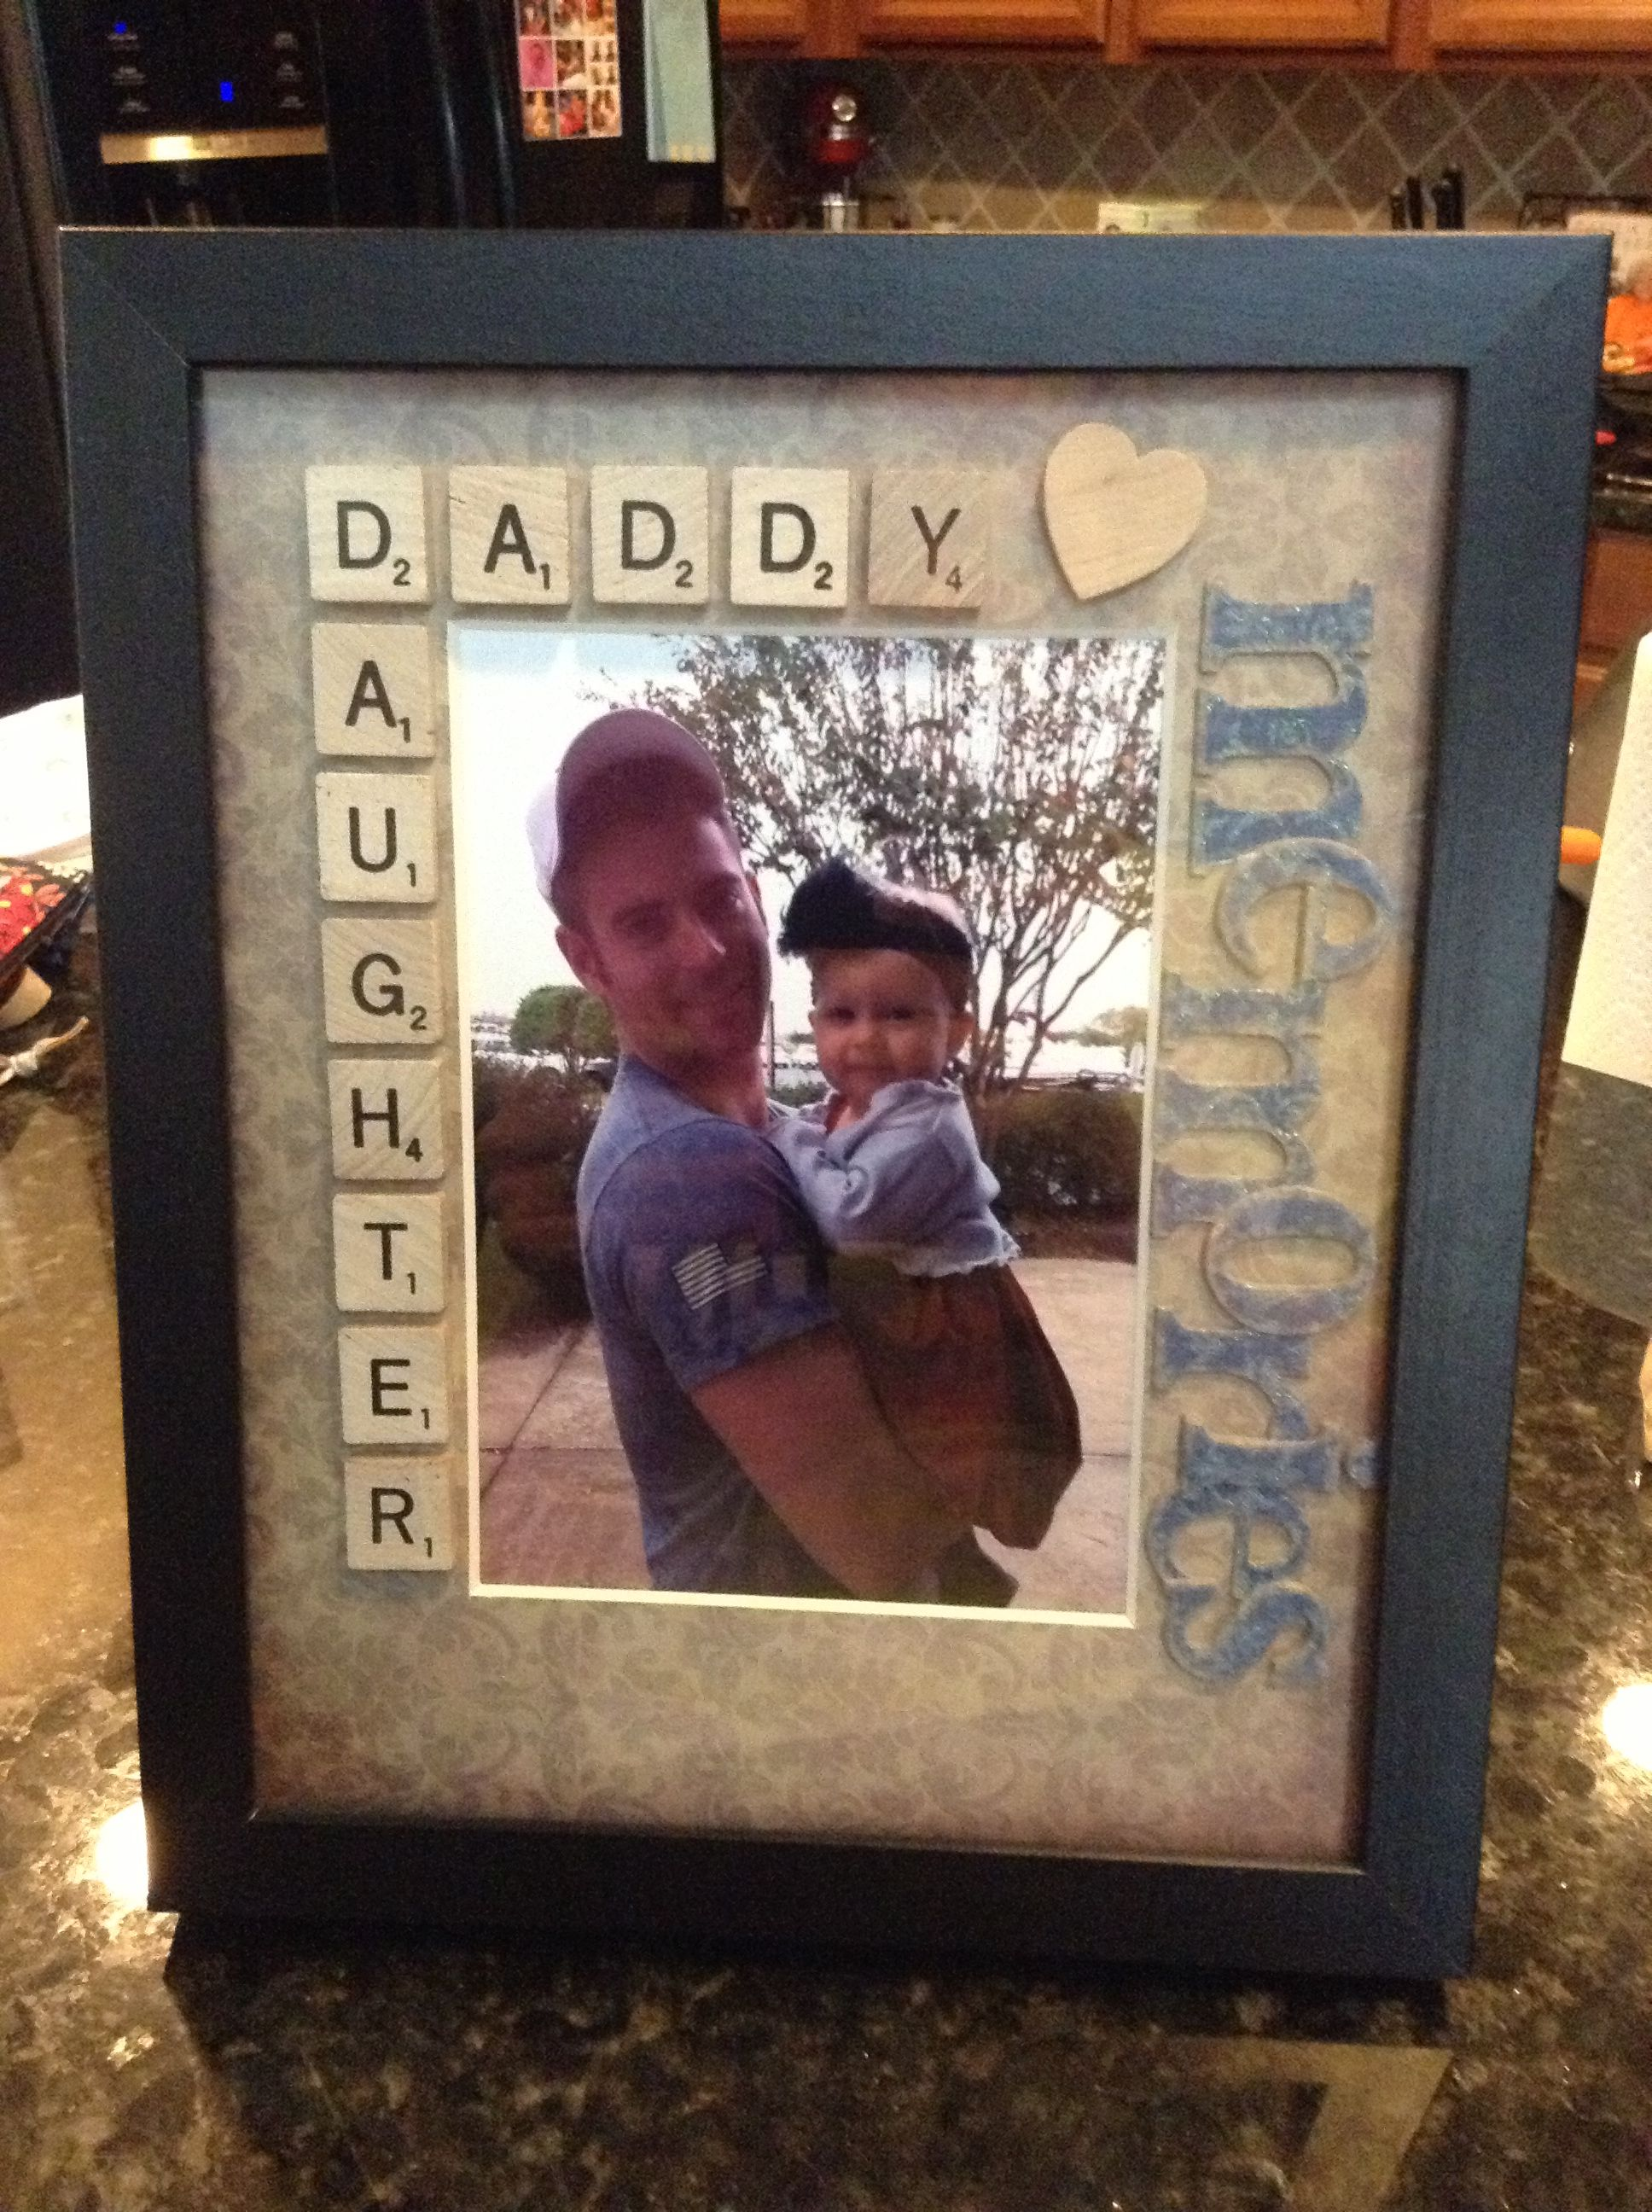 daddy/daughter scrabble tiles picture frame | Crafts | Pinterest ...